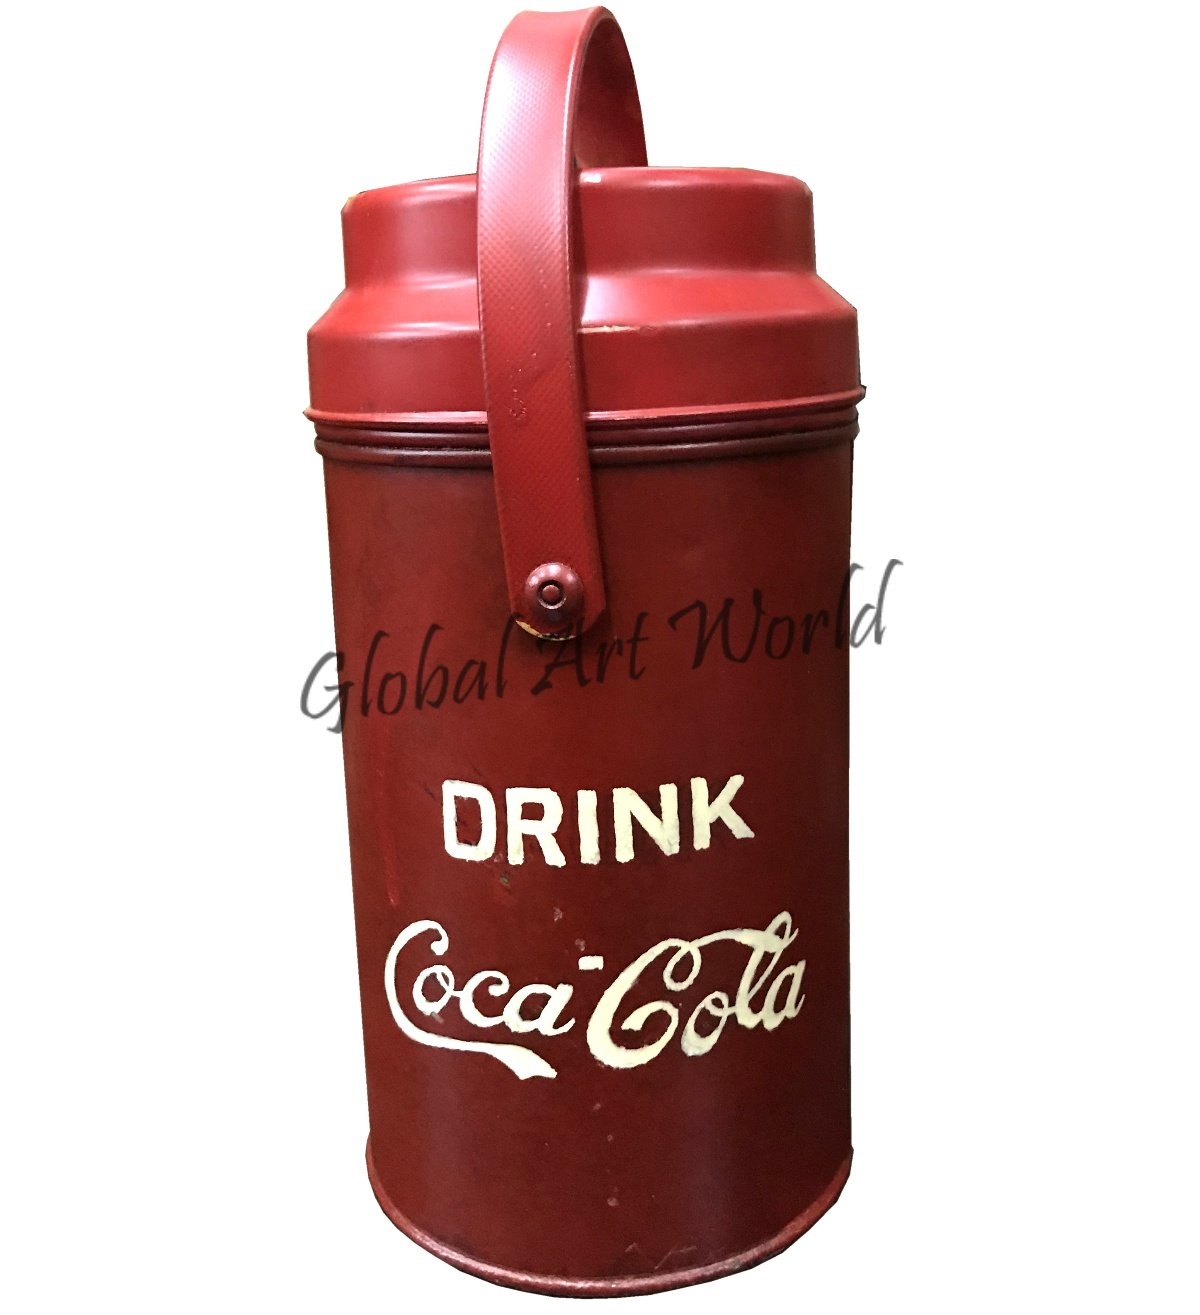 Global Art World Antique Old Collectible Portable Cylindrical Shape Carrier Coca Cola Drinks Metal Bottle Thermos With Logo Embossed HB 0169 by Global Art World (Image #4)